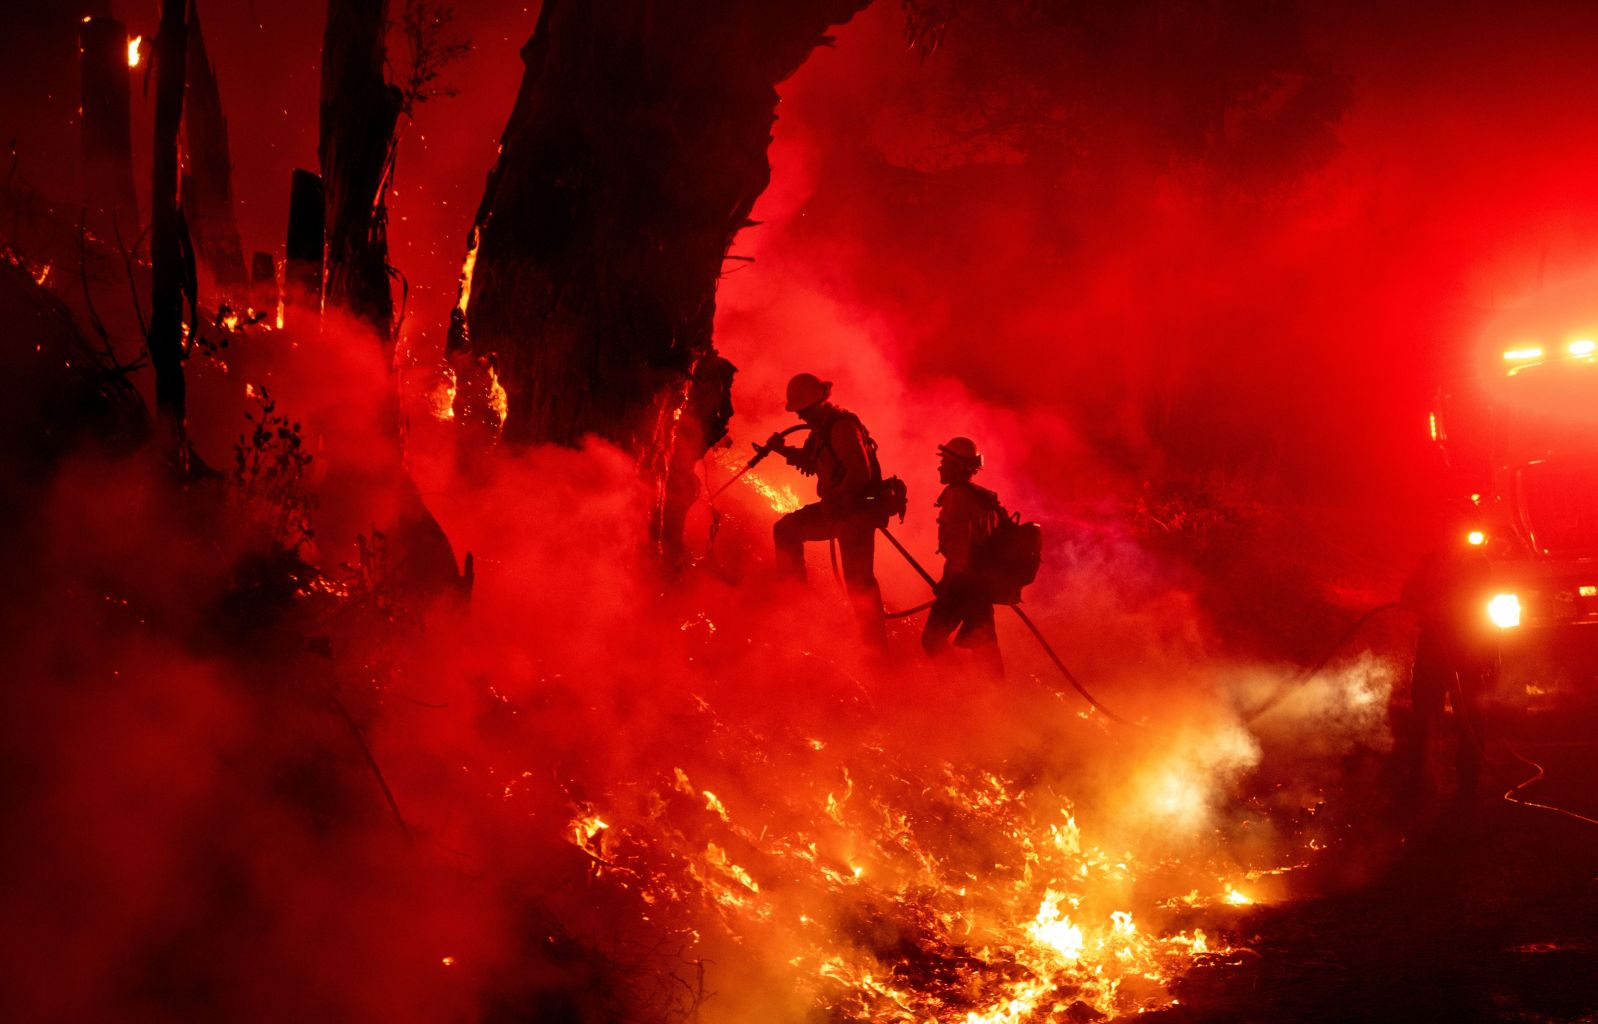 Firefighters work to control flames from a backfire during the Maria fire in Santa Paula, California, on Nov. 1. JOSH EDELSON/AFP via Getty Images